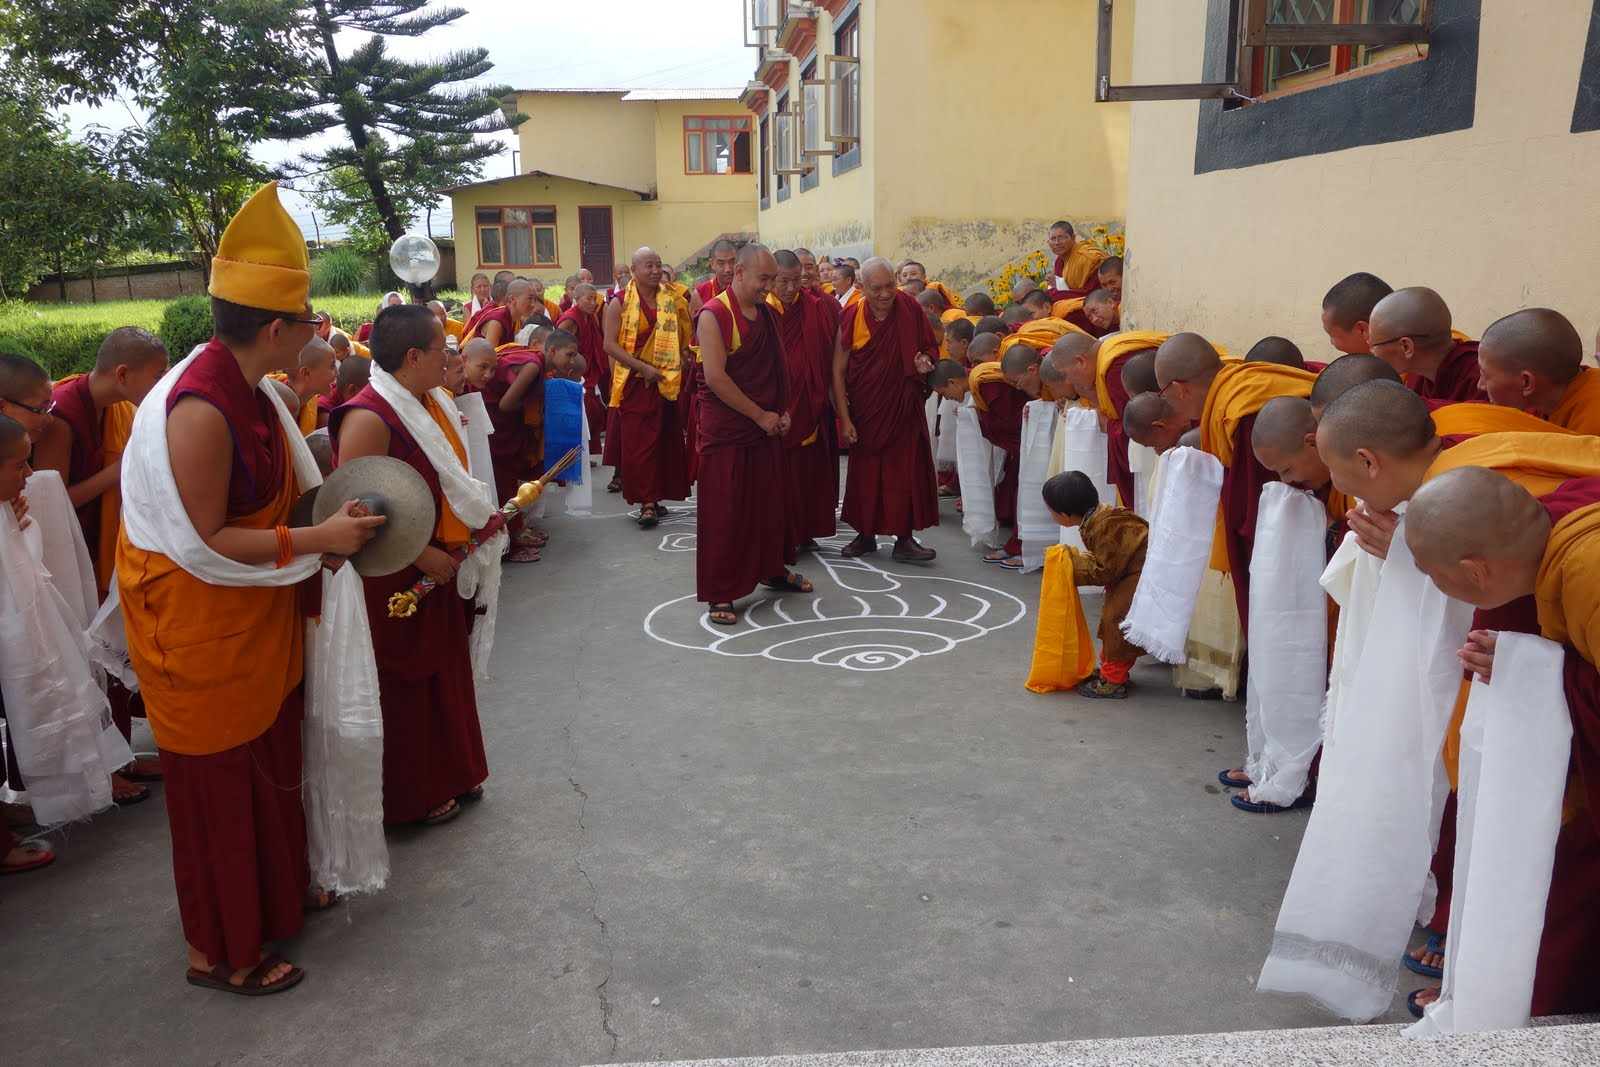 The Kopan Nuns and one very young lama, six years old, greeting Rinpoche on his arrival at Kopan. August 8, 2013 Photo: Ven. Roger Kunsang